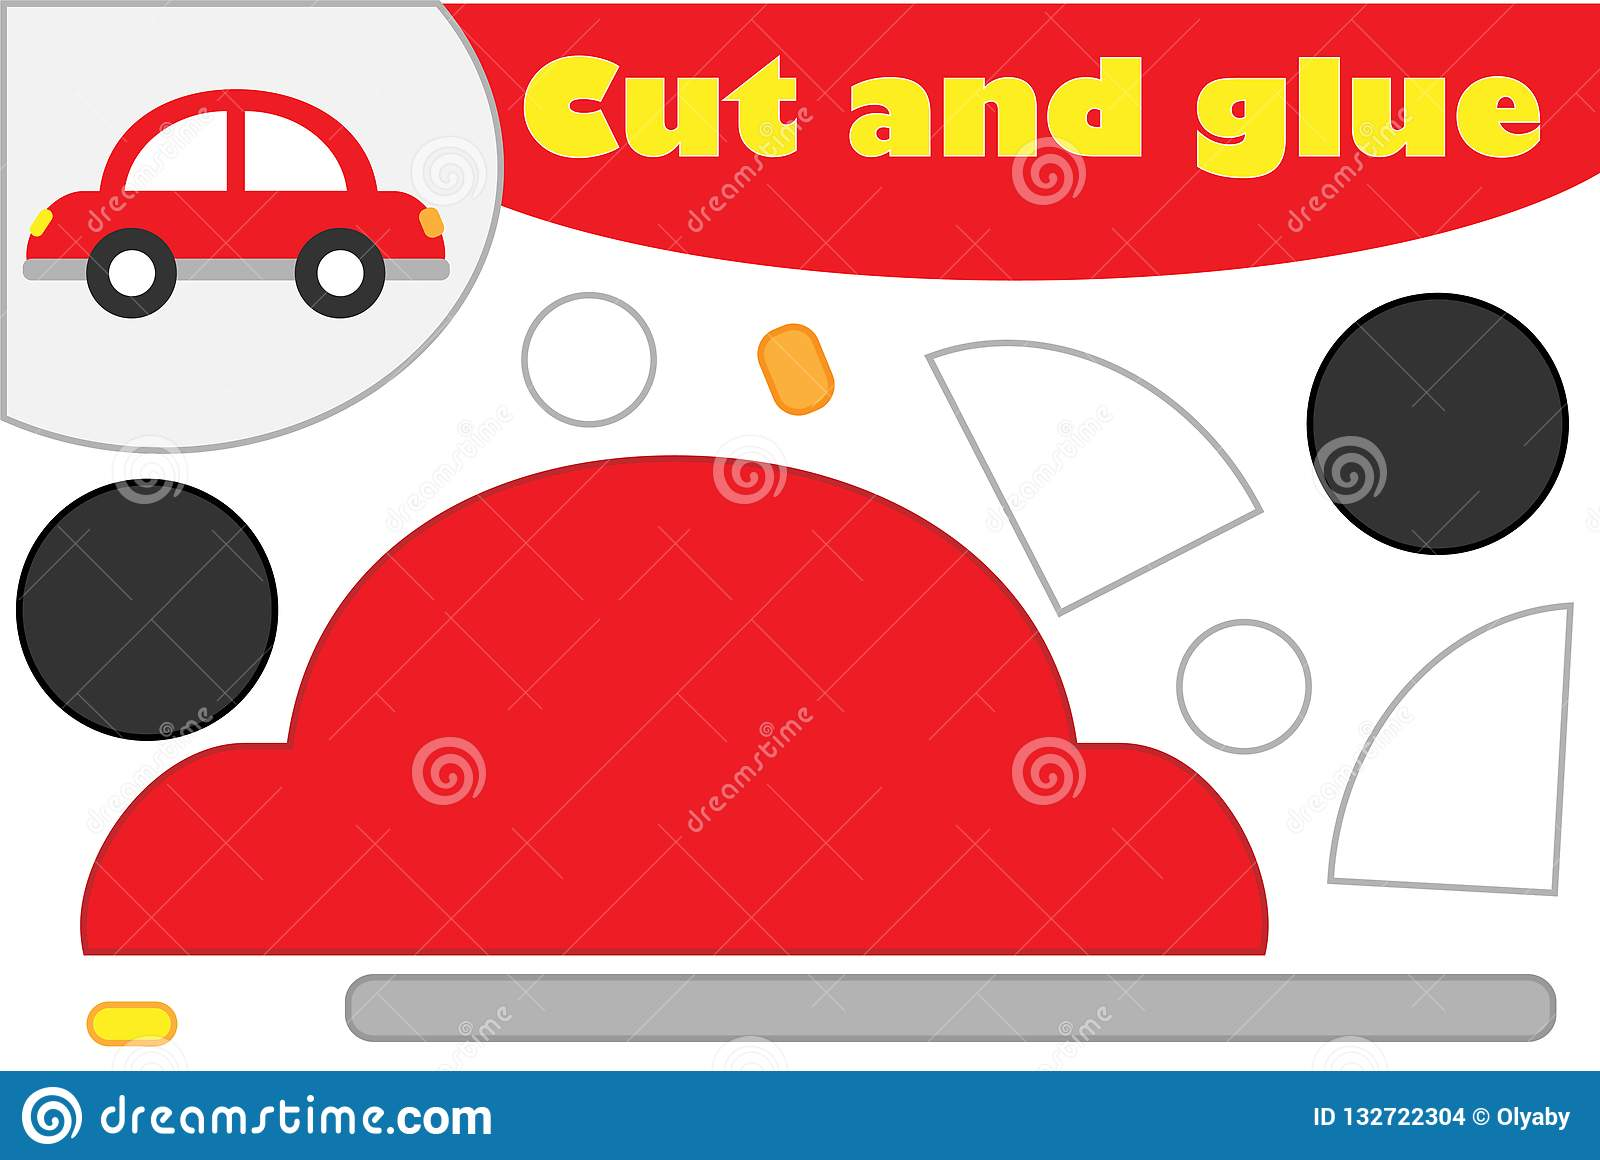 Car In Cartoon Style Education Game For The Development